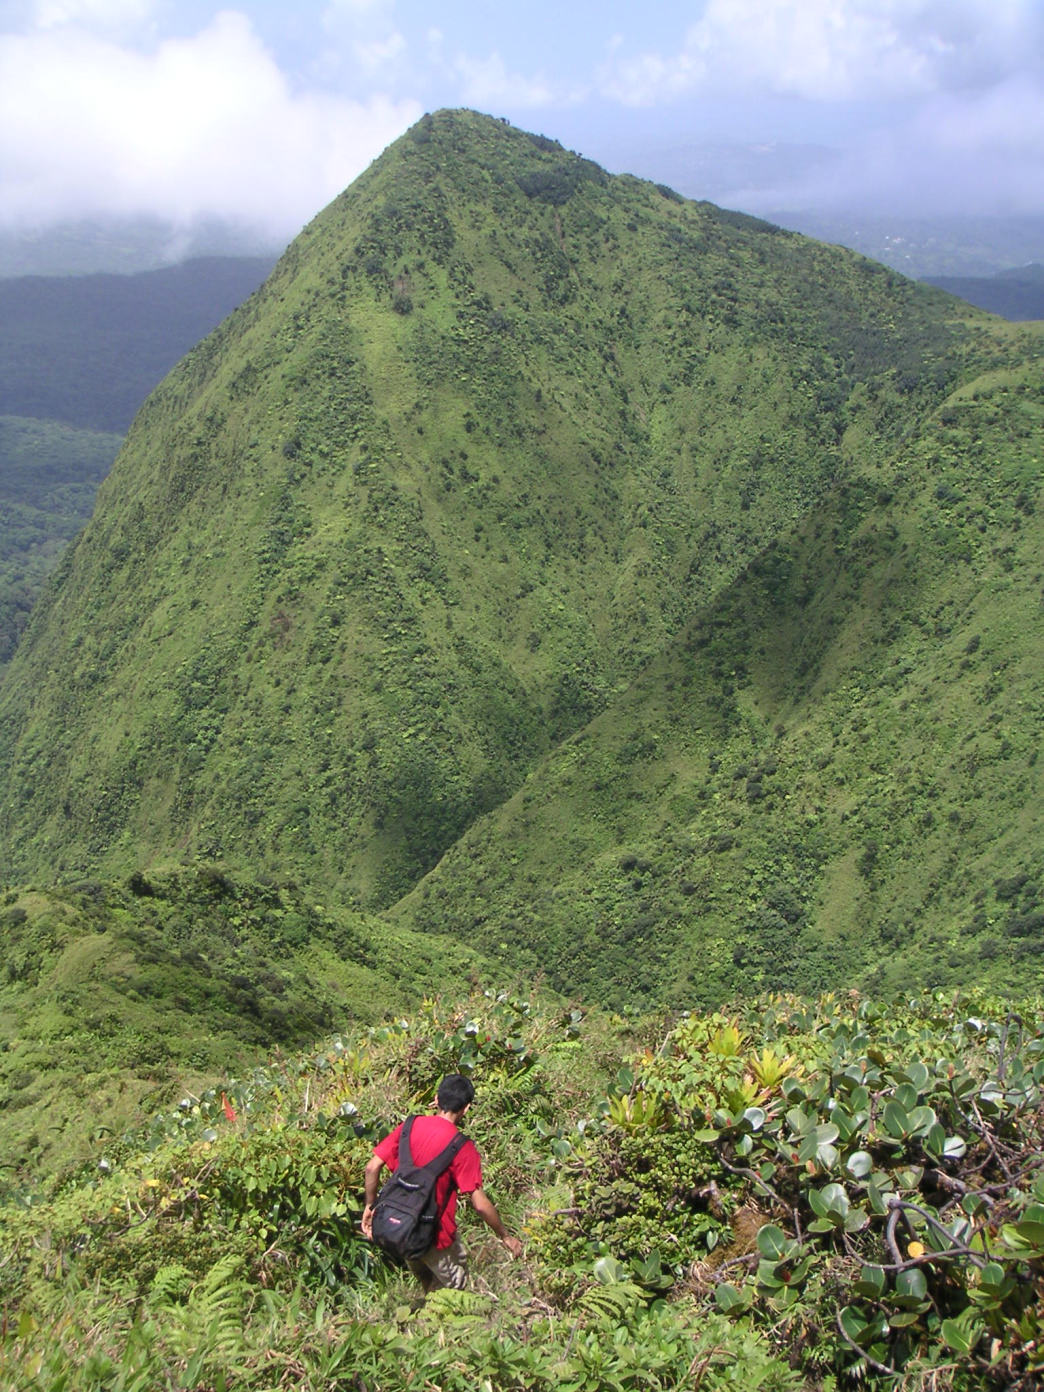 Hiking in Martinique is exciting and adventurous thanks to the mountainous countryside.